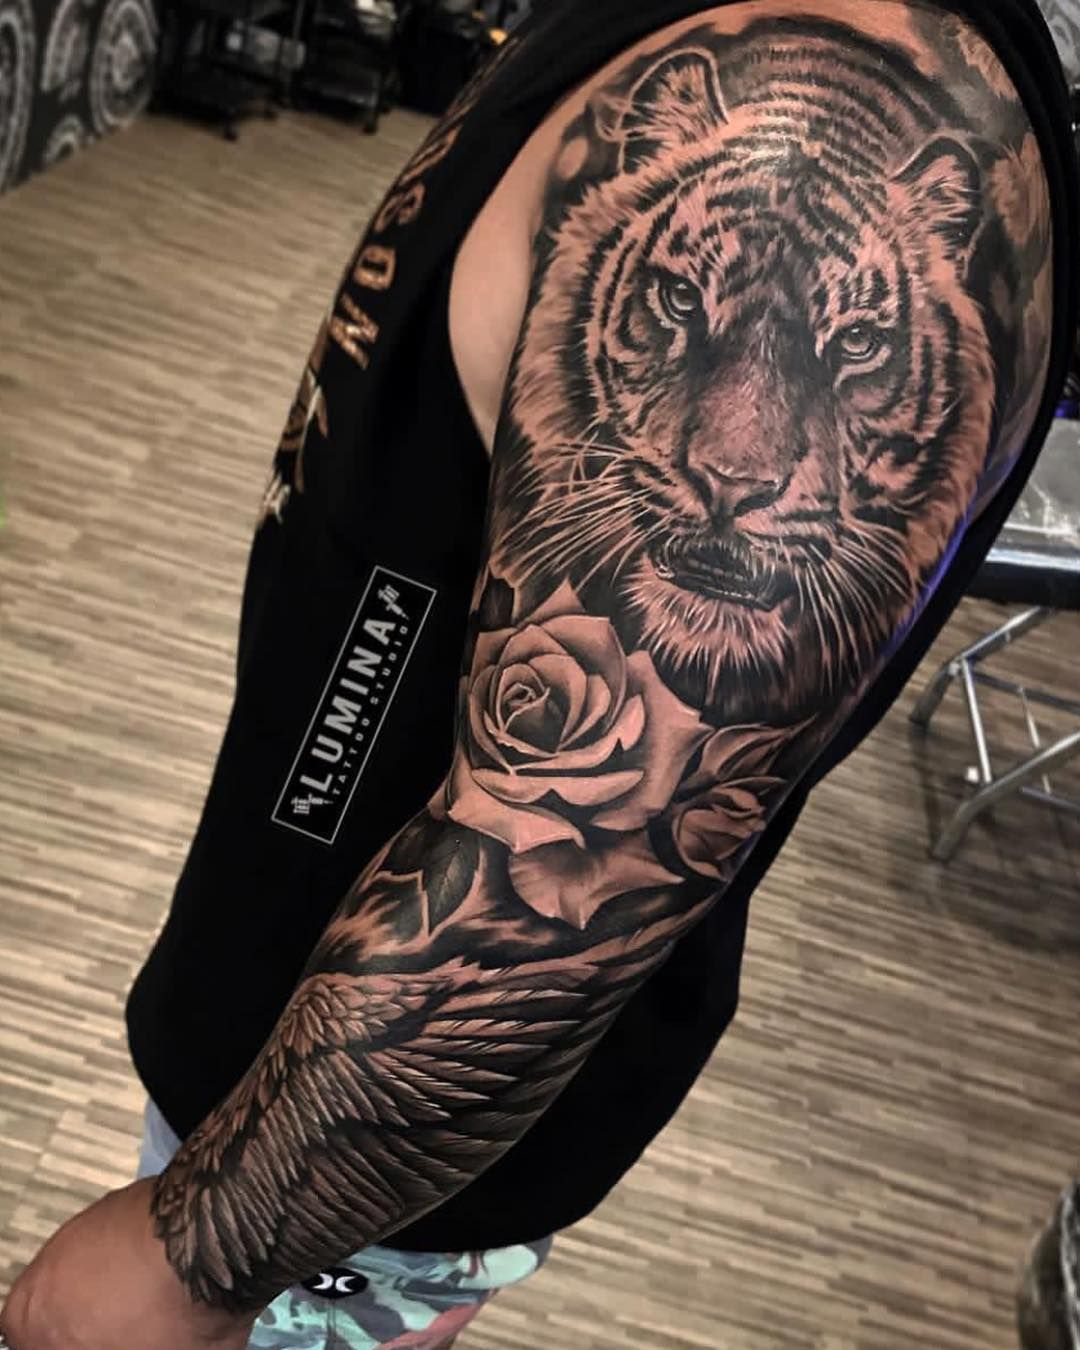 Image may contain one or more people Sleeve tattoos